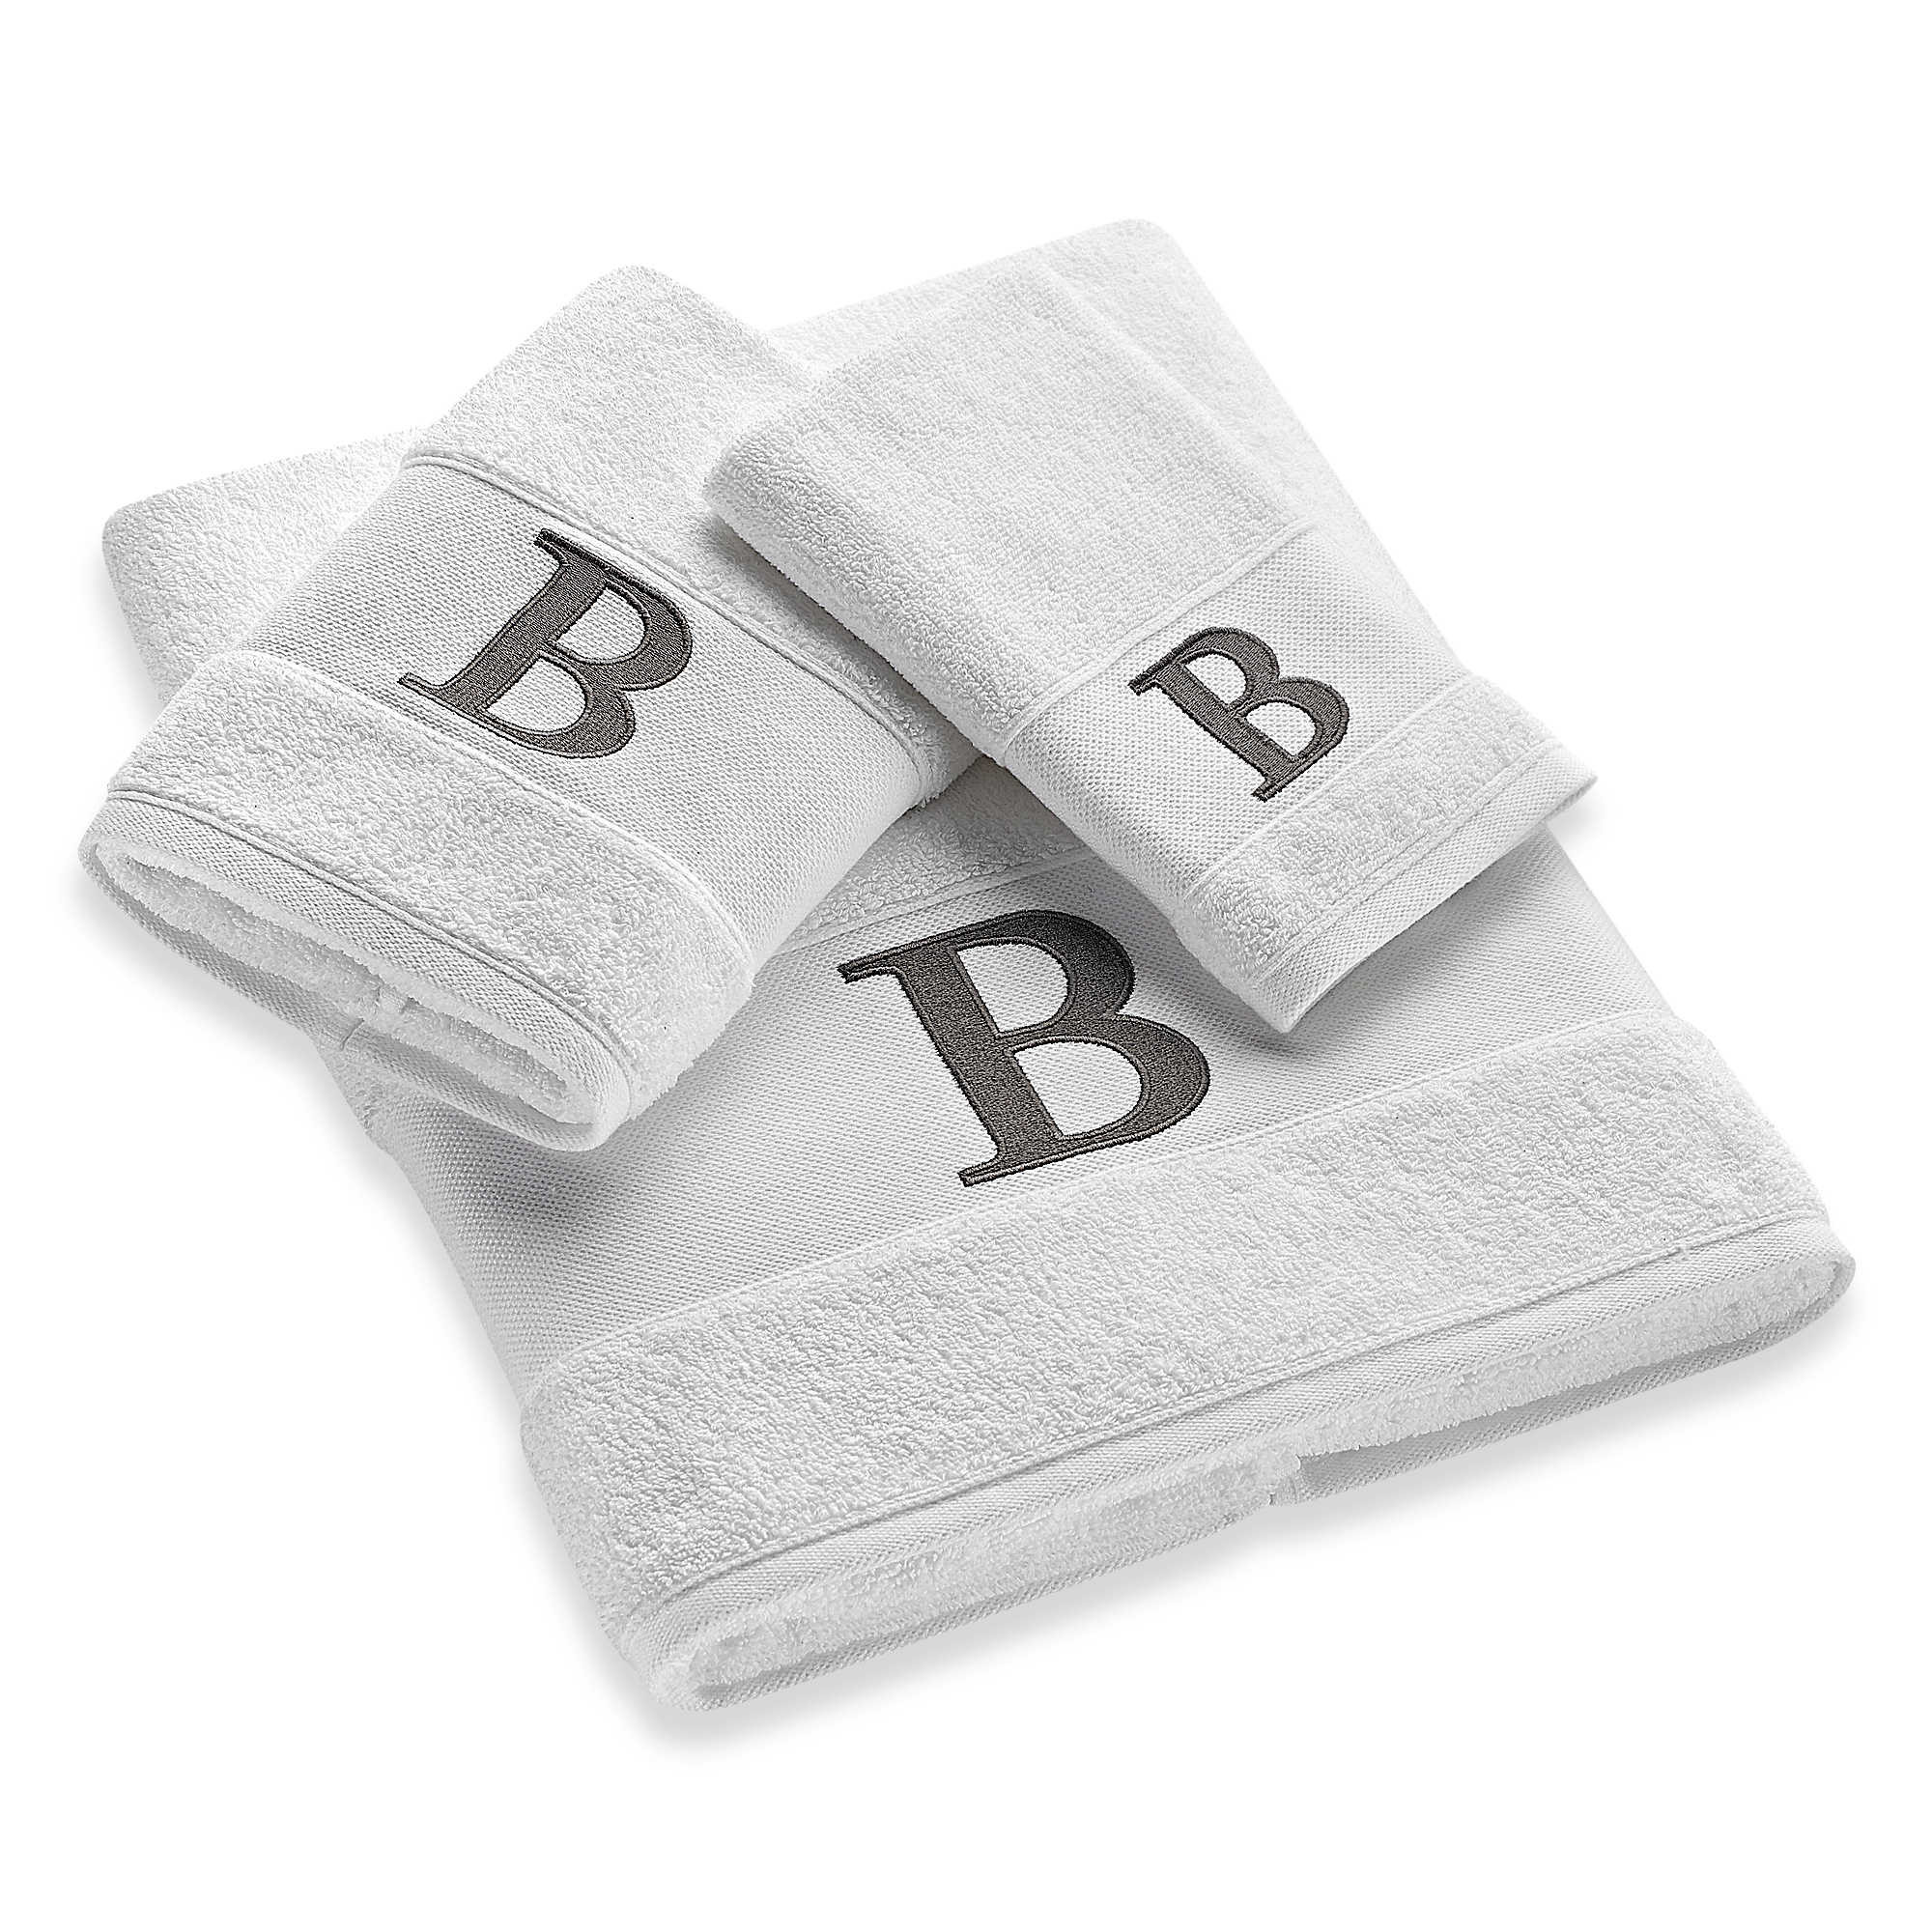 Bed Bath And Beyond Canada: Bed Bath And Beyond Canada